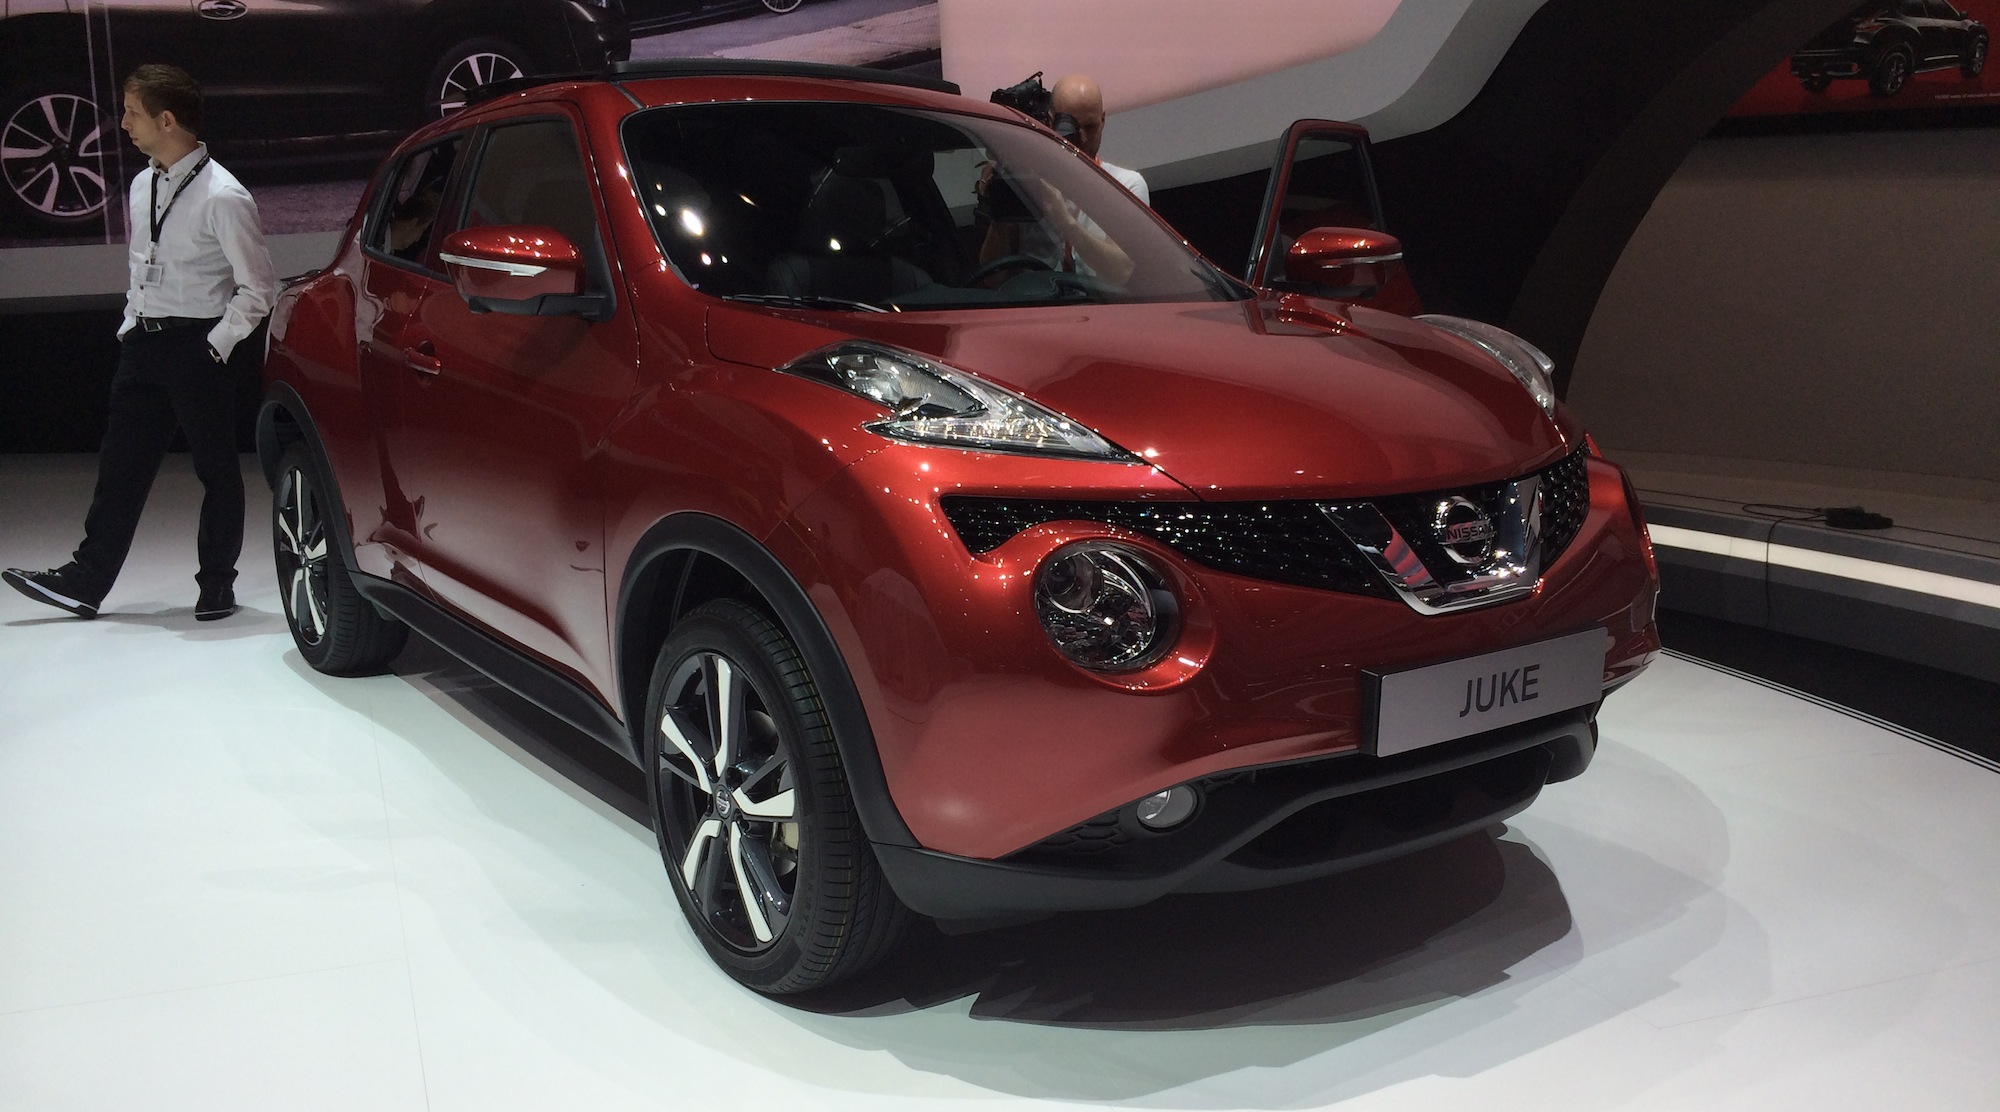 nissan juke   facelifted suv gets 1 2-litre turbo  bigger boot  more tech